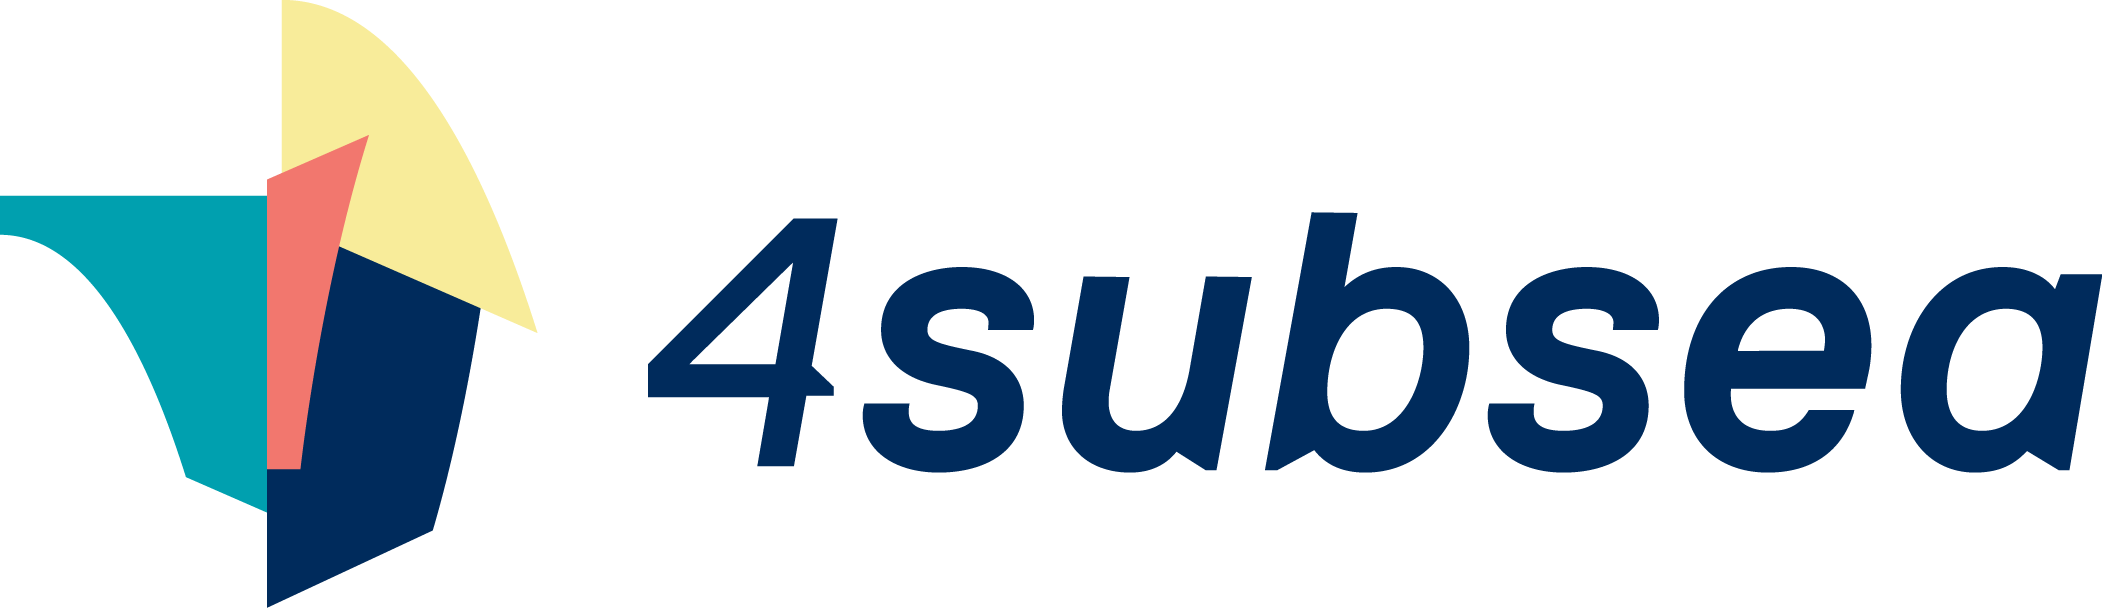 4Subsea